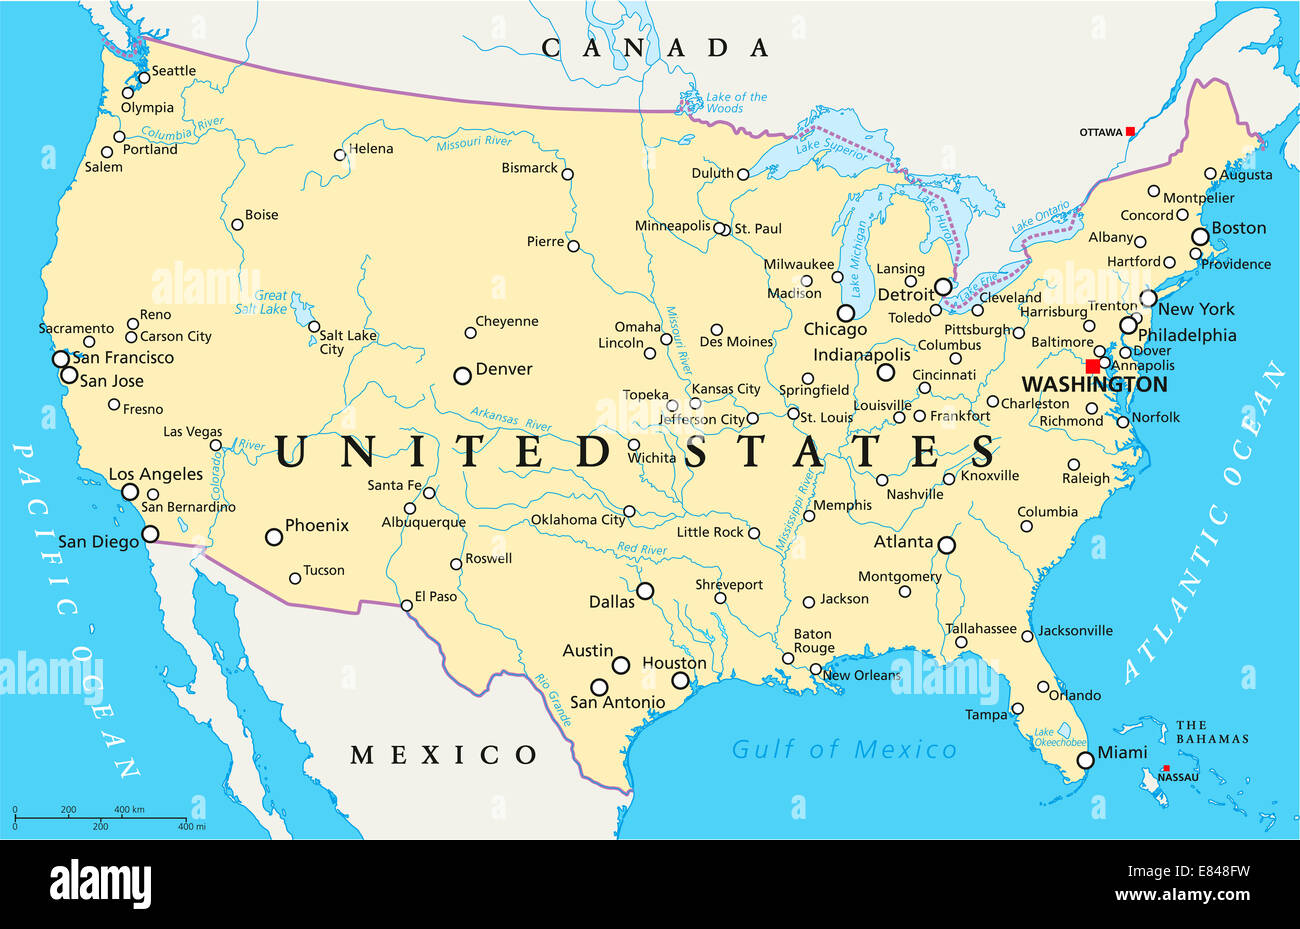 United States of America Political Map Stock Photo: 73853245 - Alamy